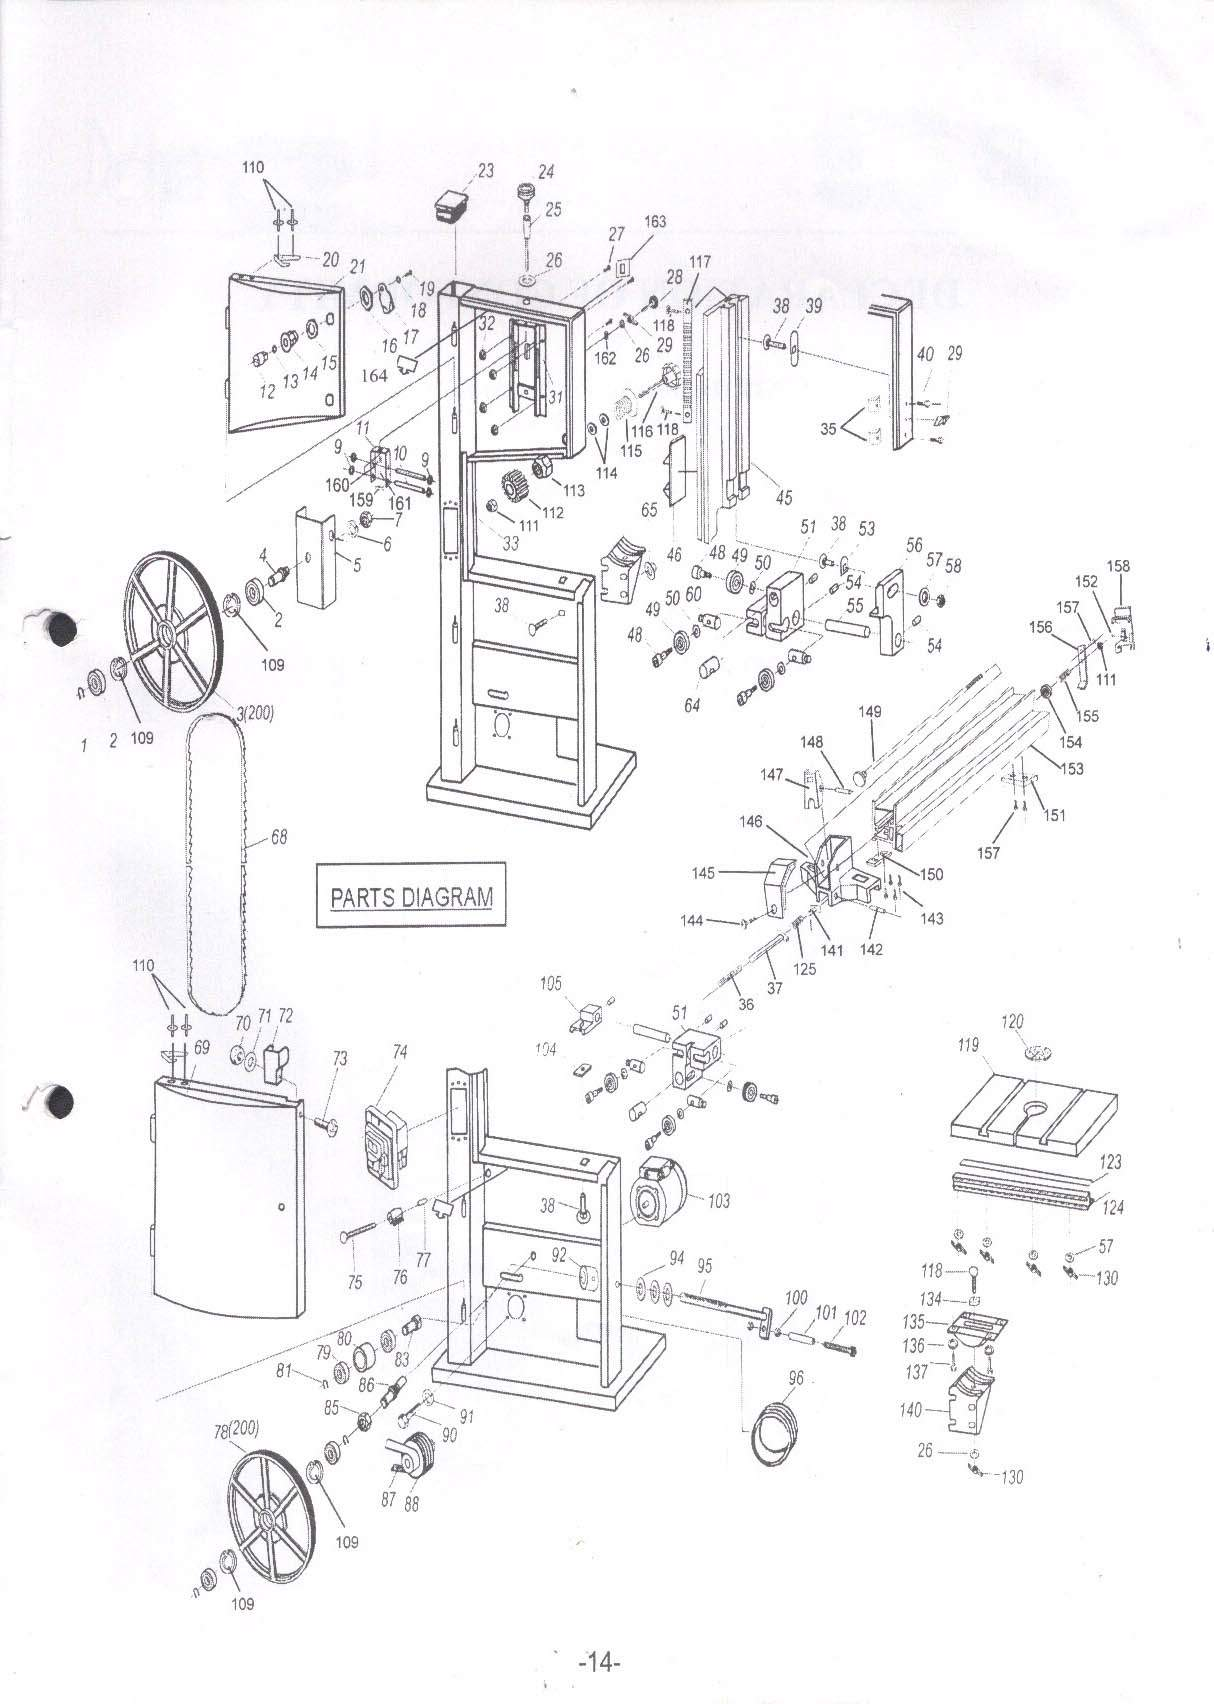 Sip 12 Wood Bandsaw Diagram